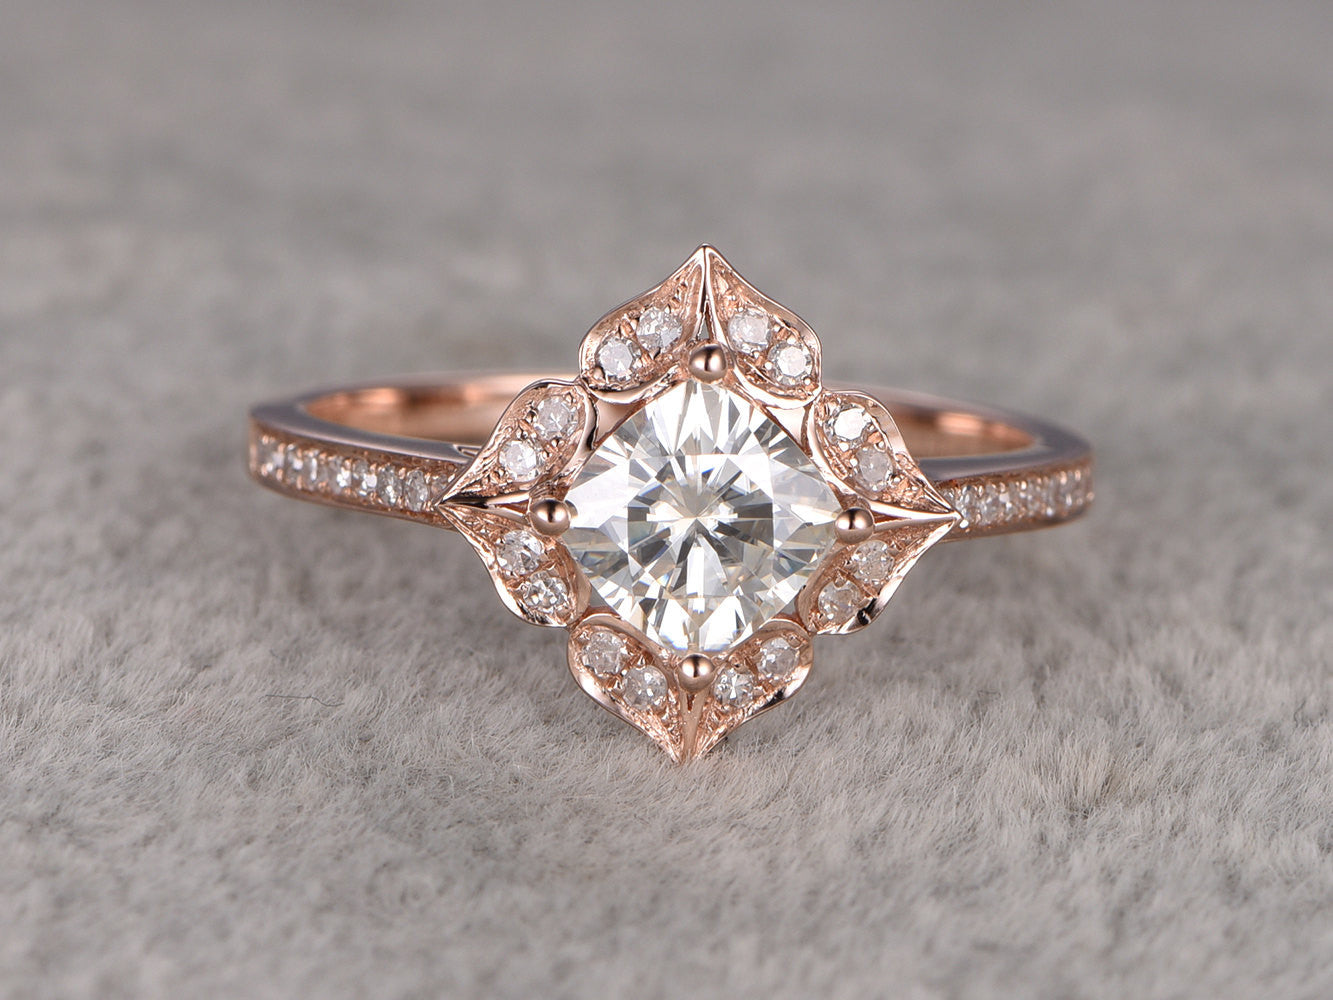 7mm Cushion brilliant Moissanite Engagement ring Rose gold,Diamond wedding band,1.7ct stone Promise Bridal Ring,Halo floral,Anniversary